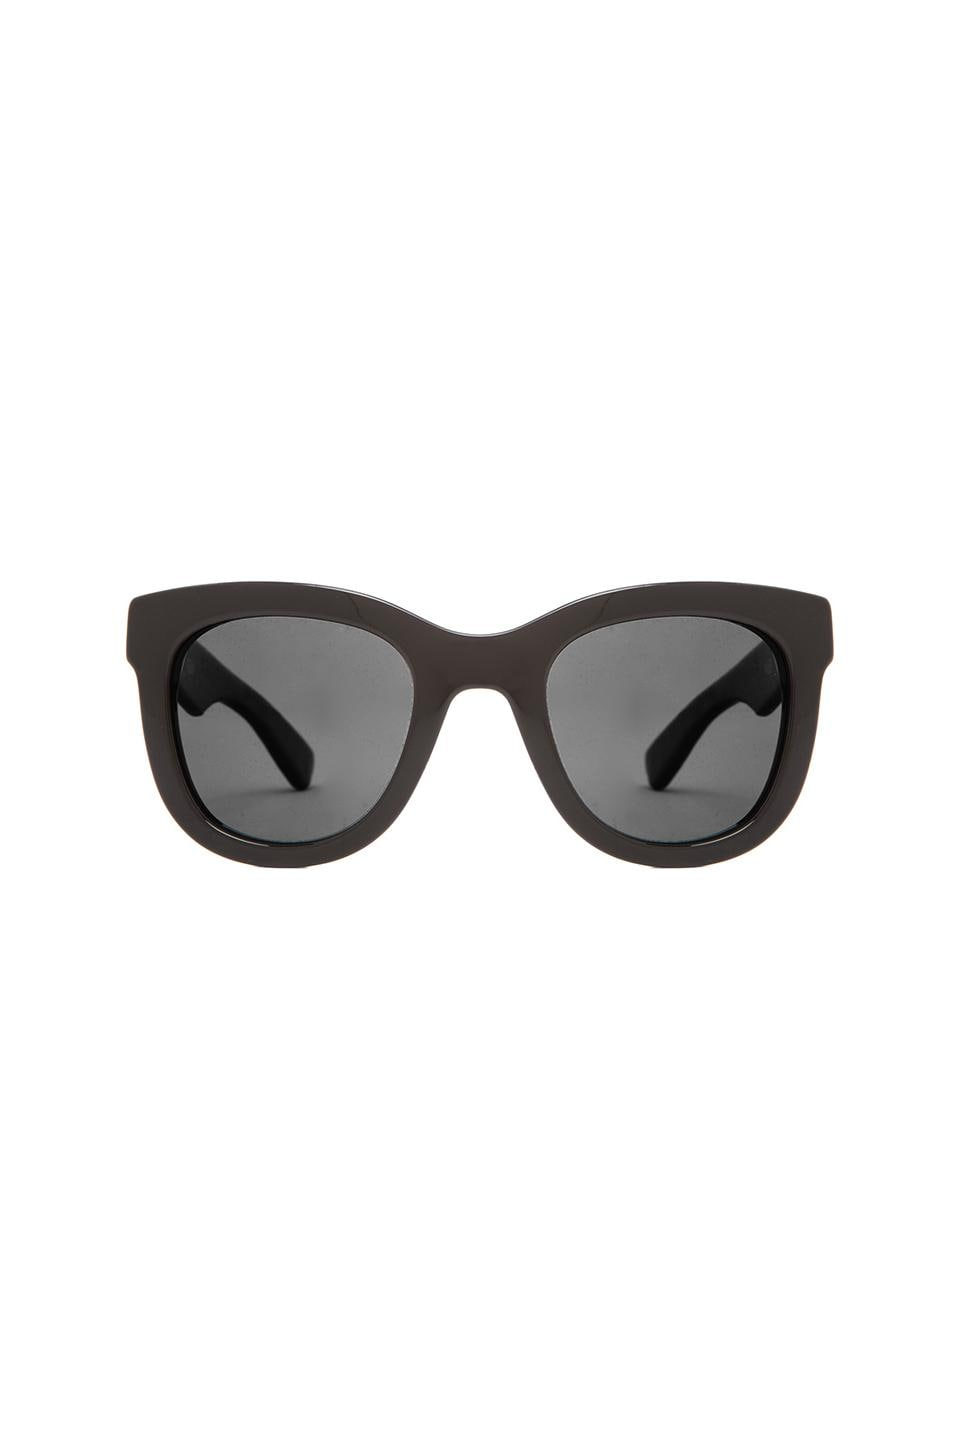 ANINE BING New York Sunglasses in Black